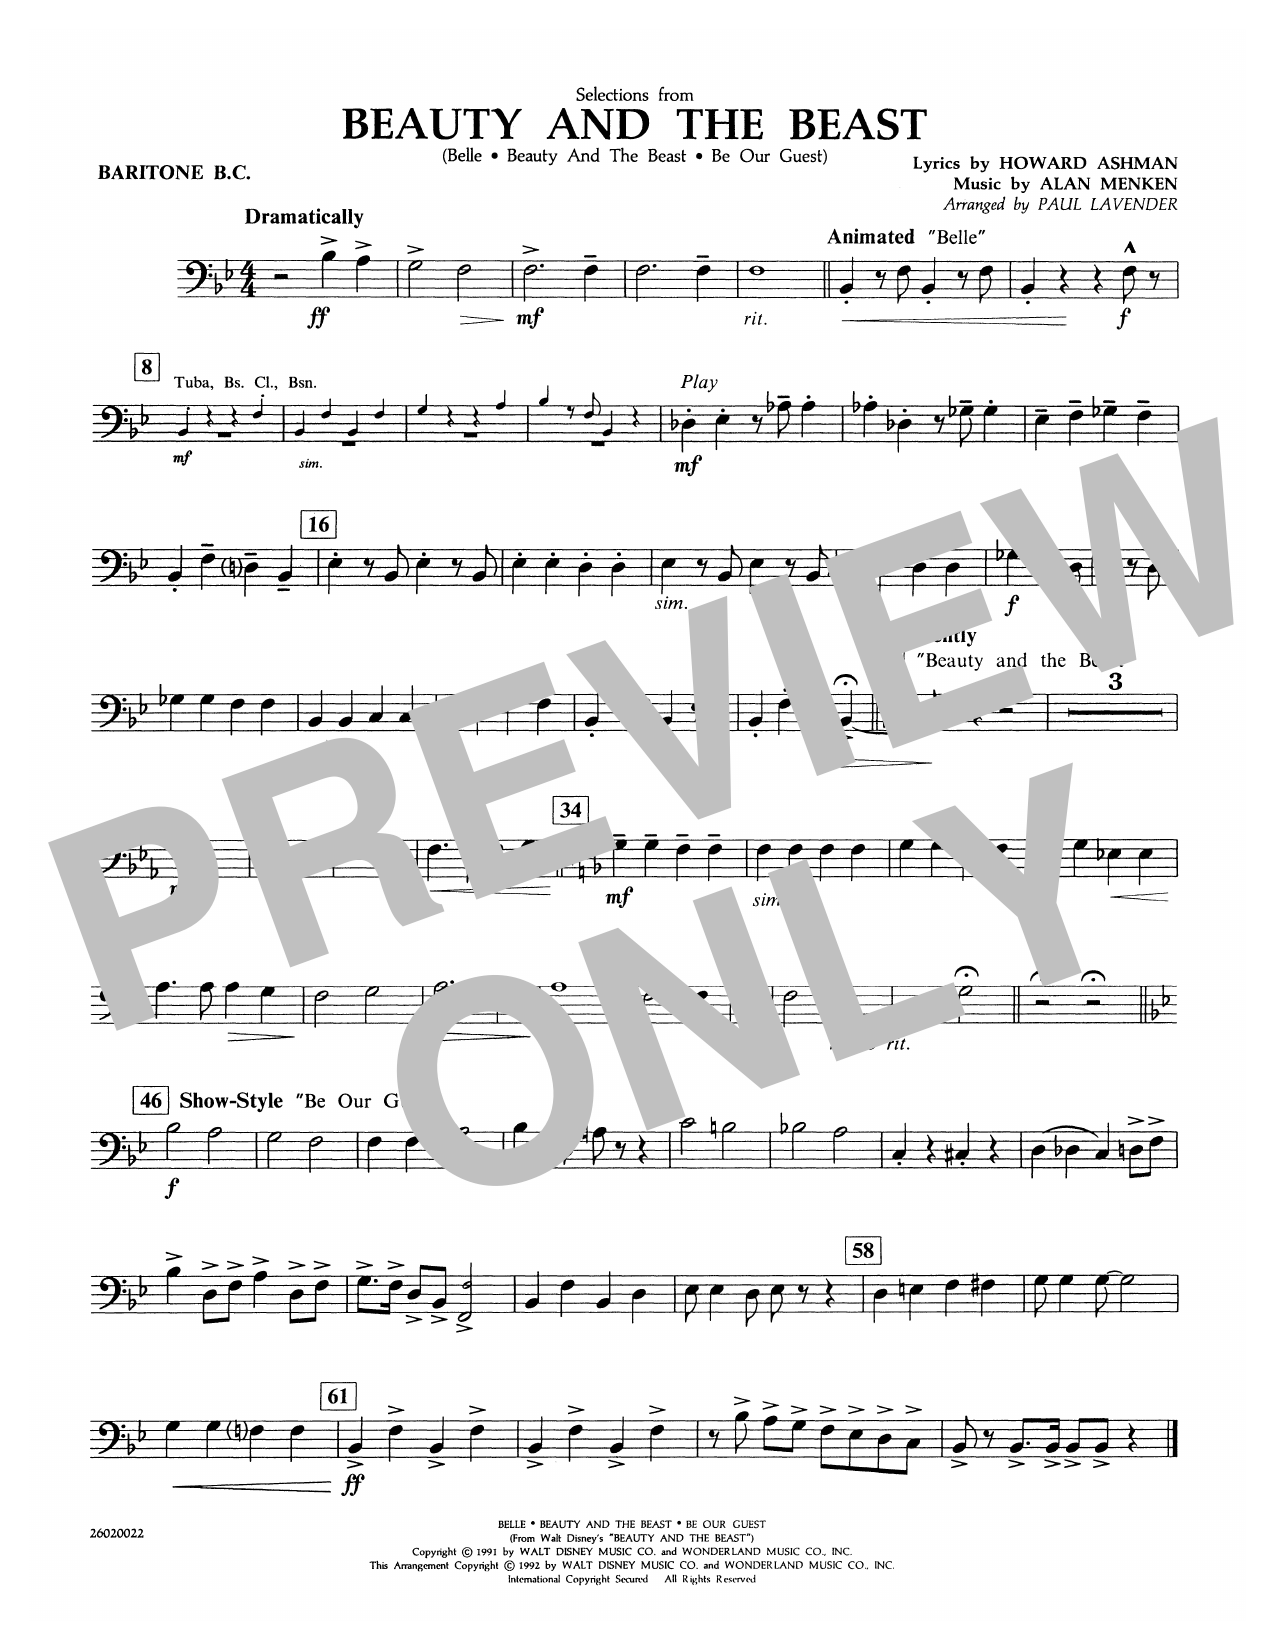 Paul Lavender Selections from Beauty and the Beast - Baritone B.C. sheet music notes and chords. Download Printable PDF.